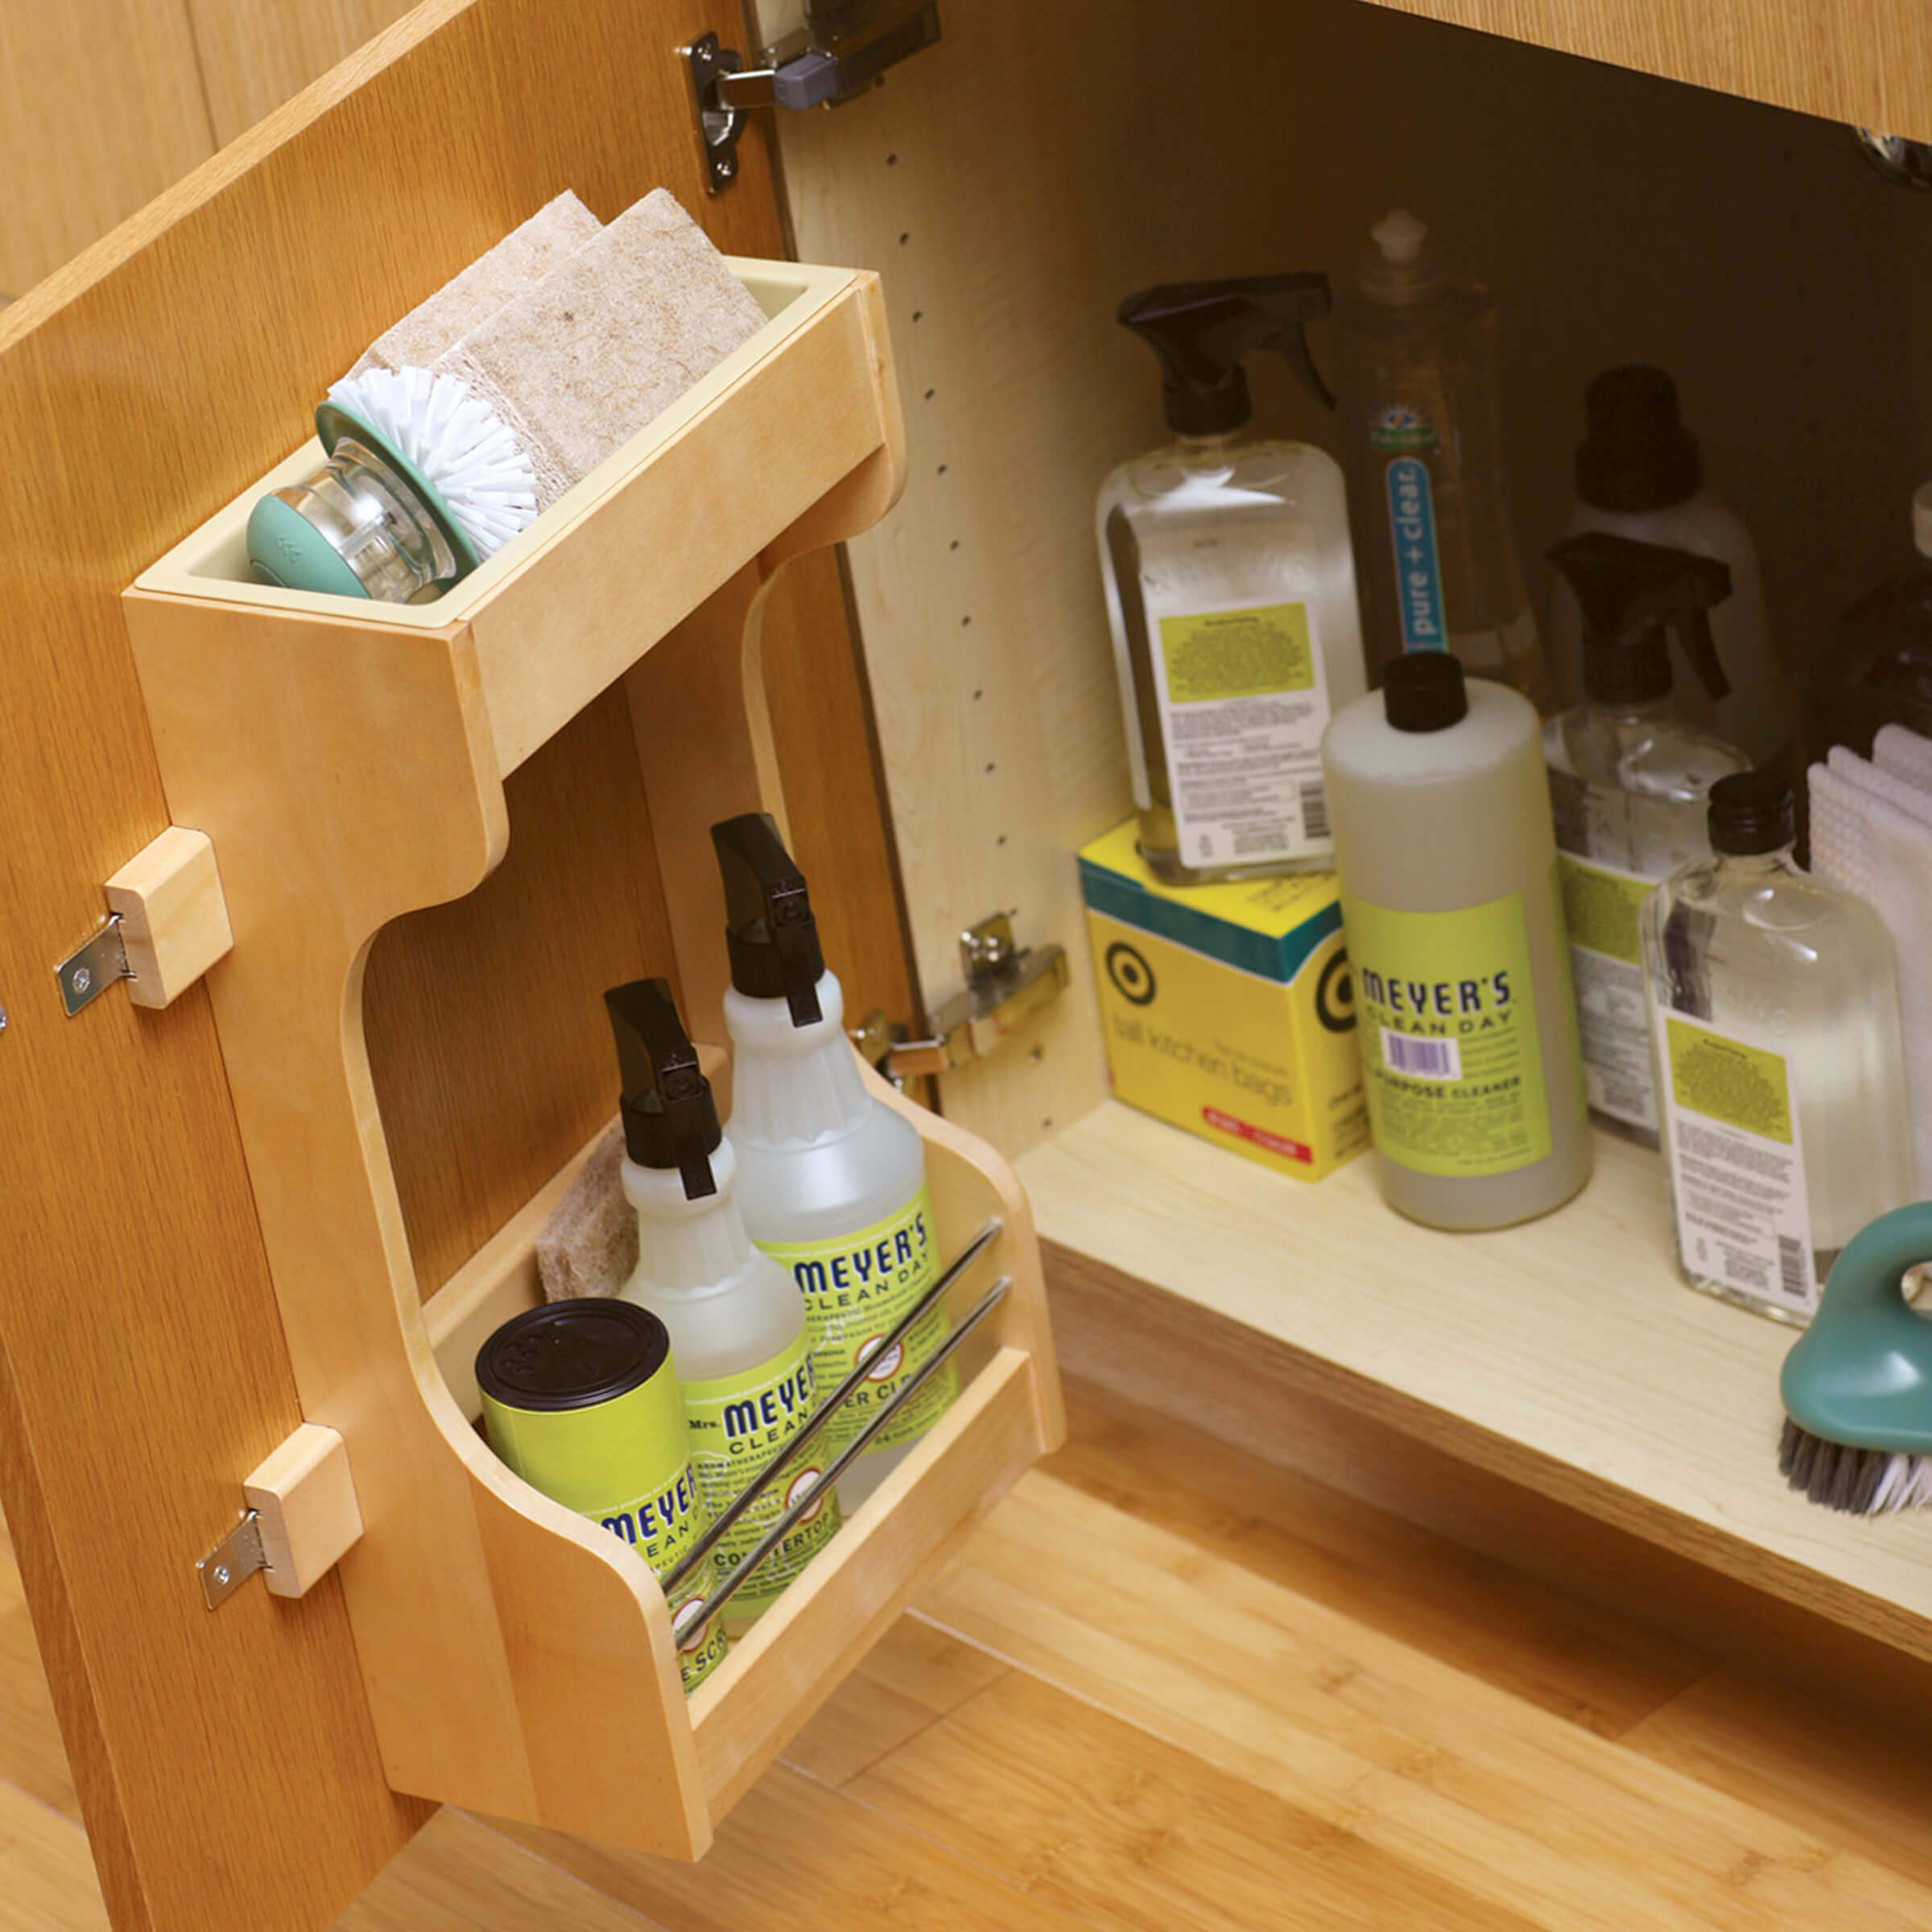 Dura Supreme's convenient storage rack on the cabinet door organizes cleaning supplies and provides a space for you most used products to be close at hand.